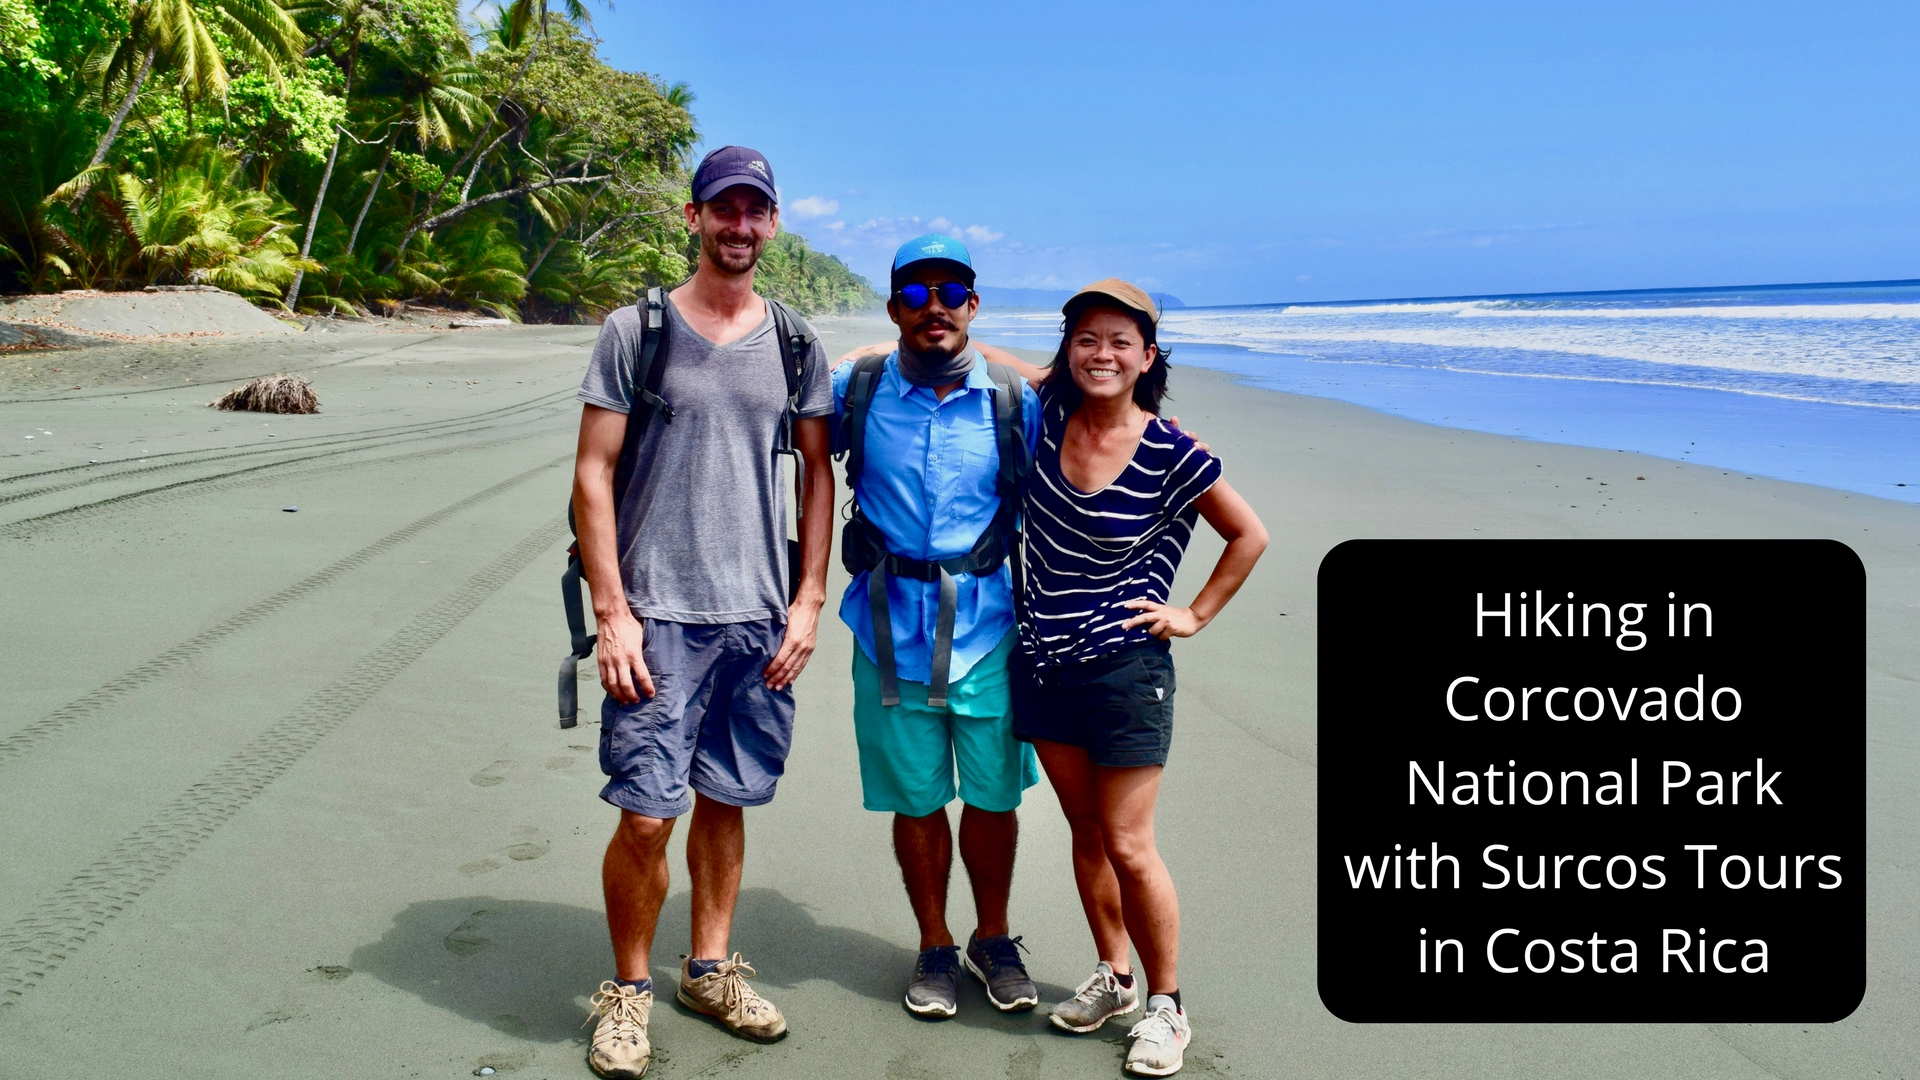 Work with Travel Bloggers